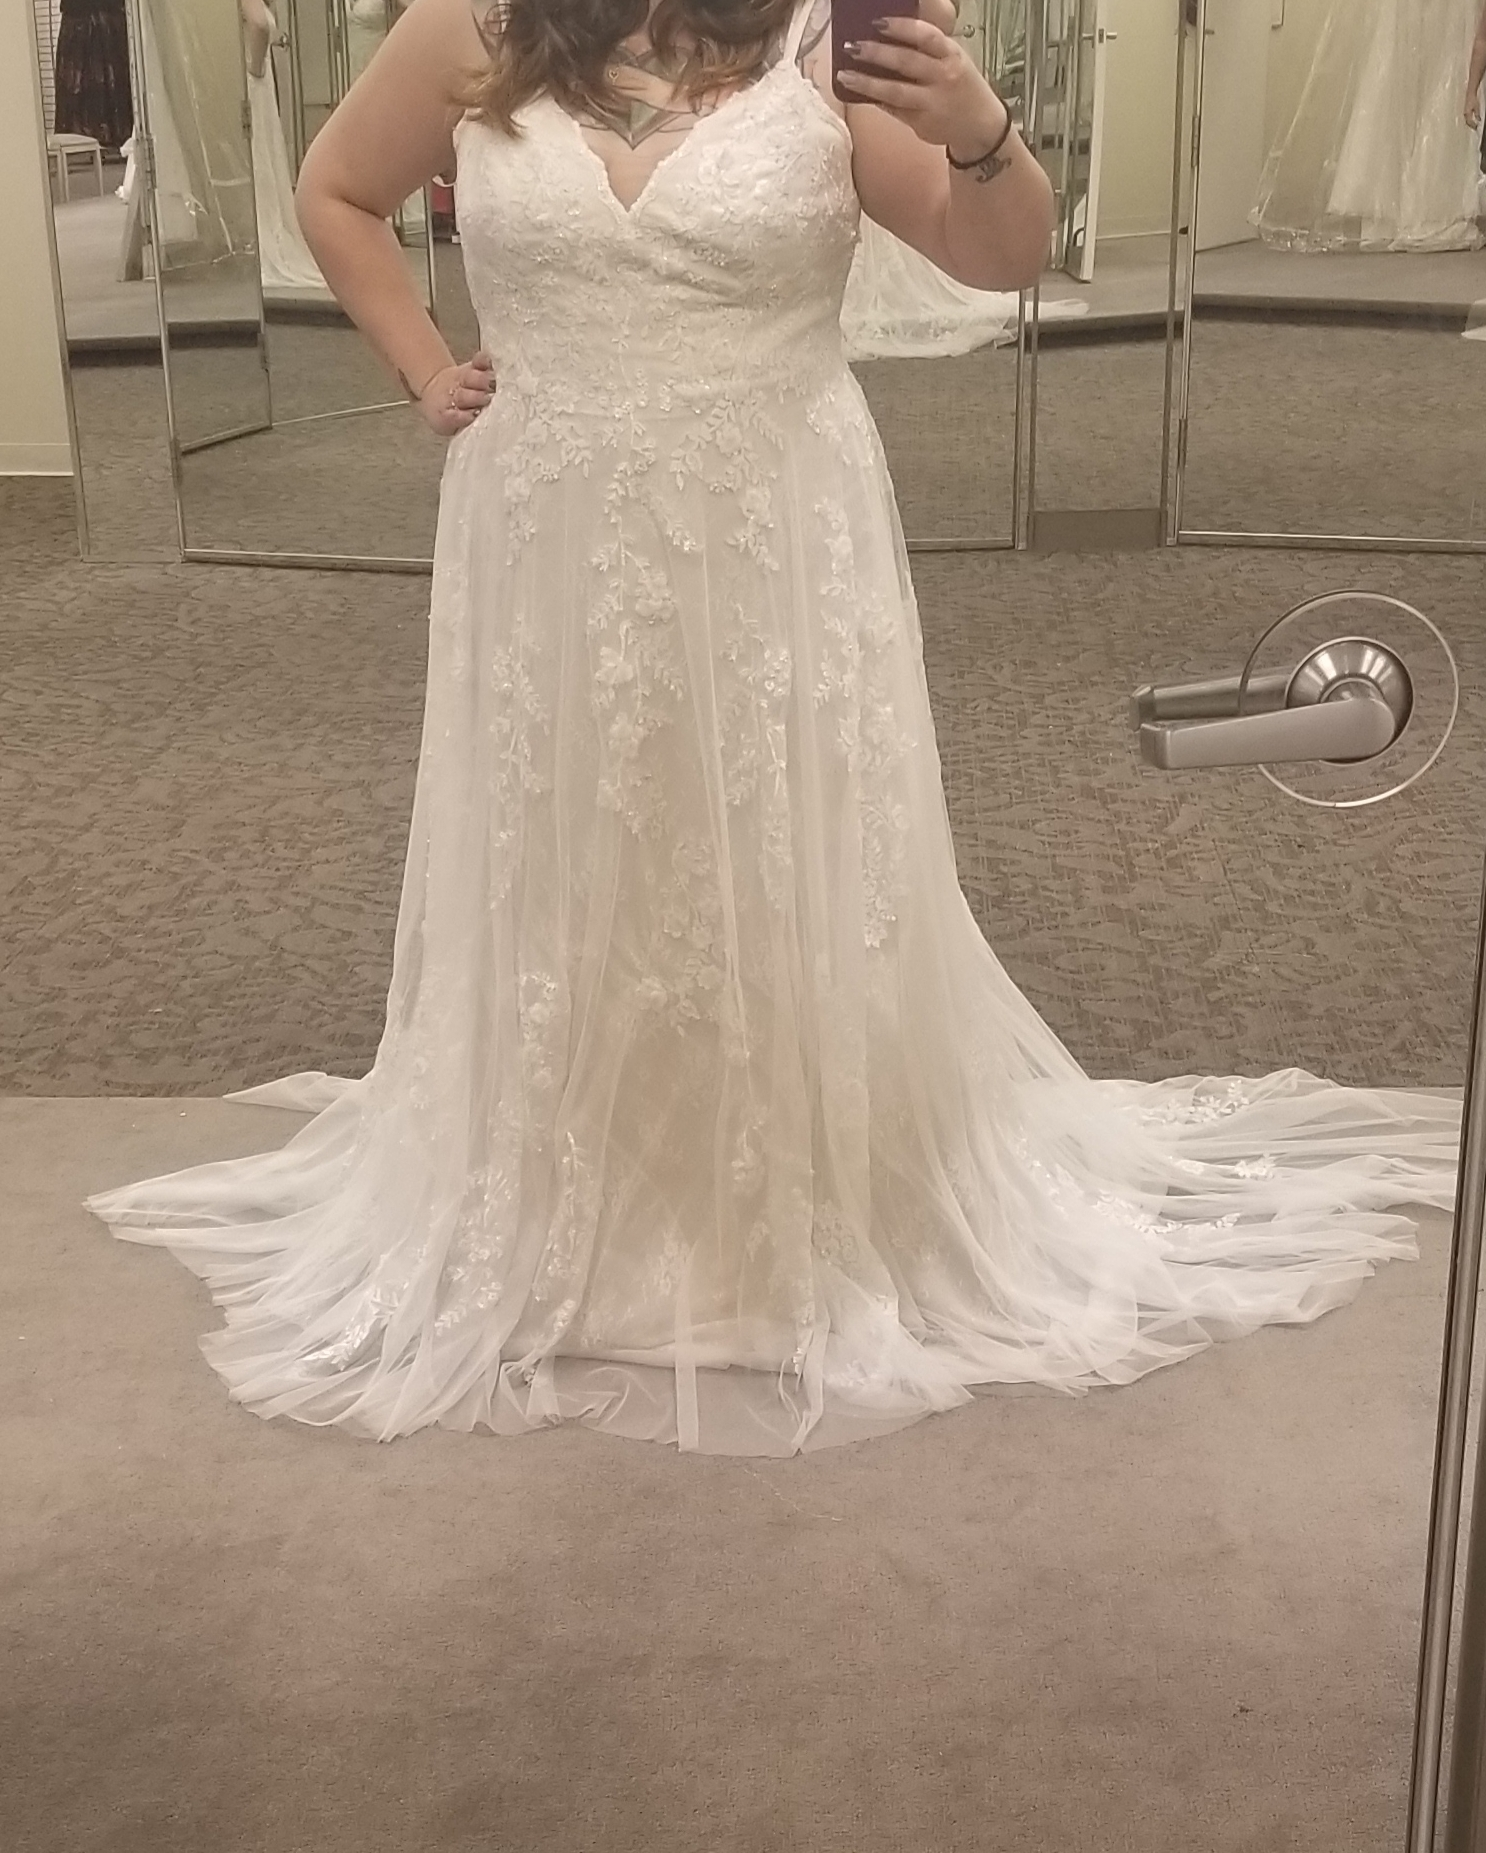 Melissa sweet - 8MS251177 size 16 - $800 - (41% OFF)